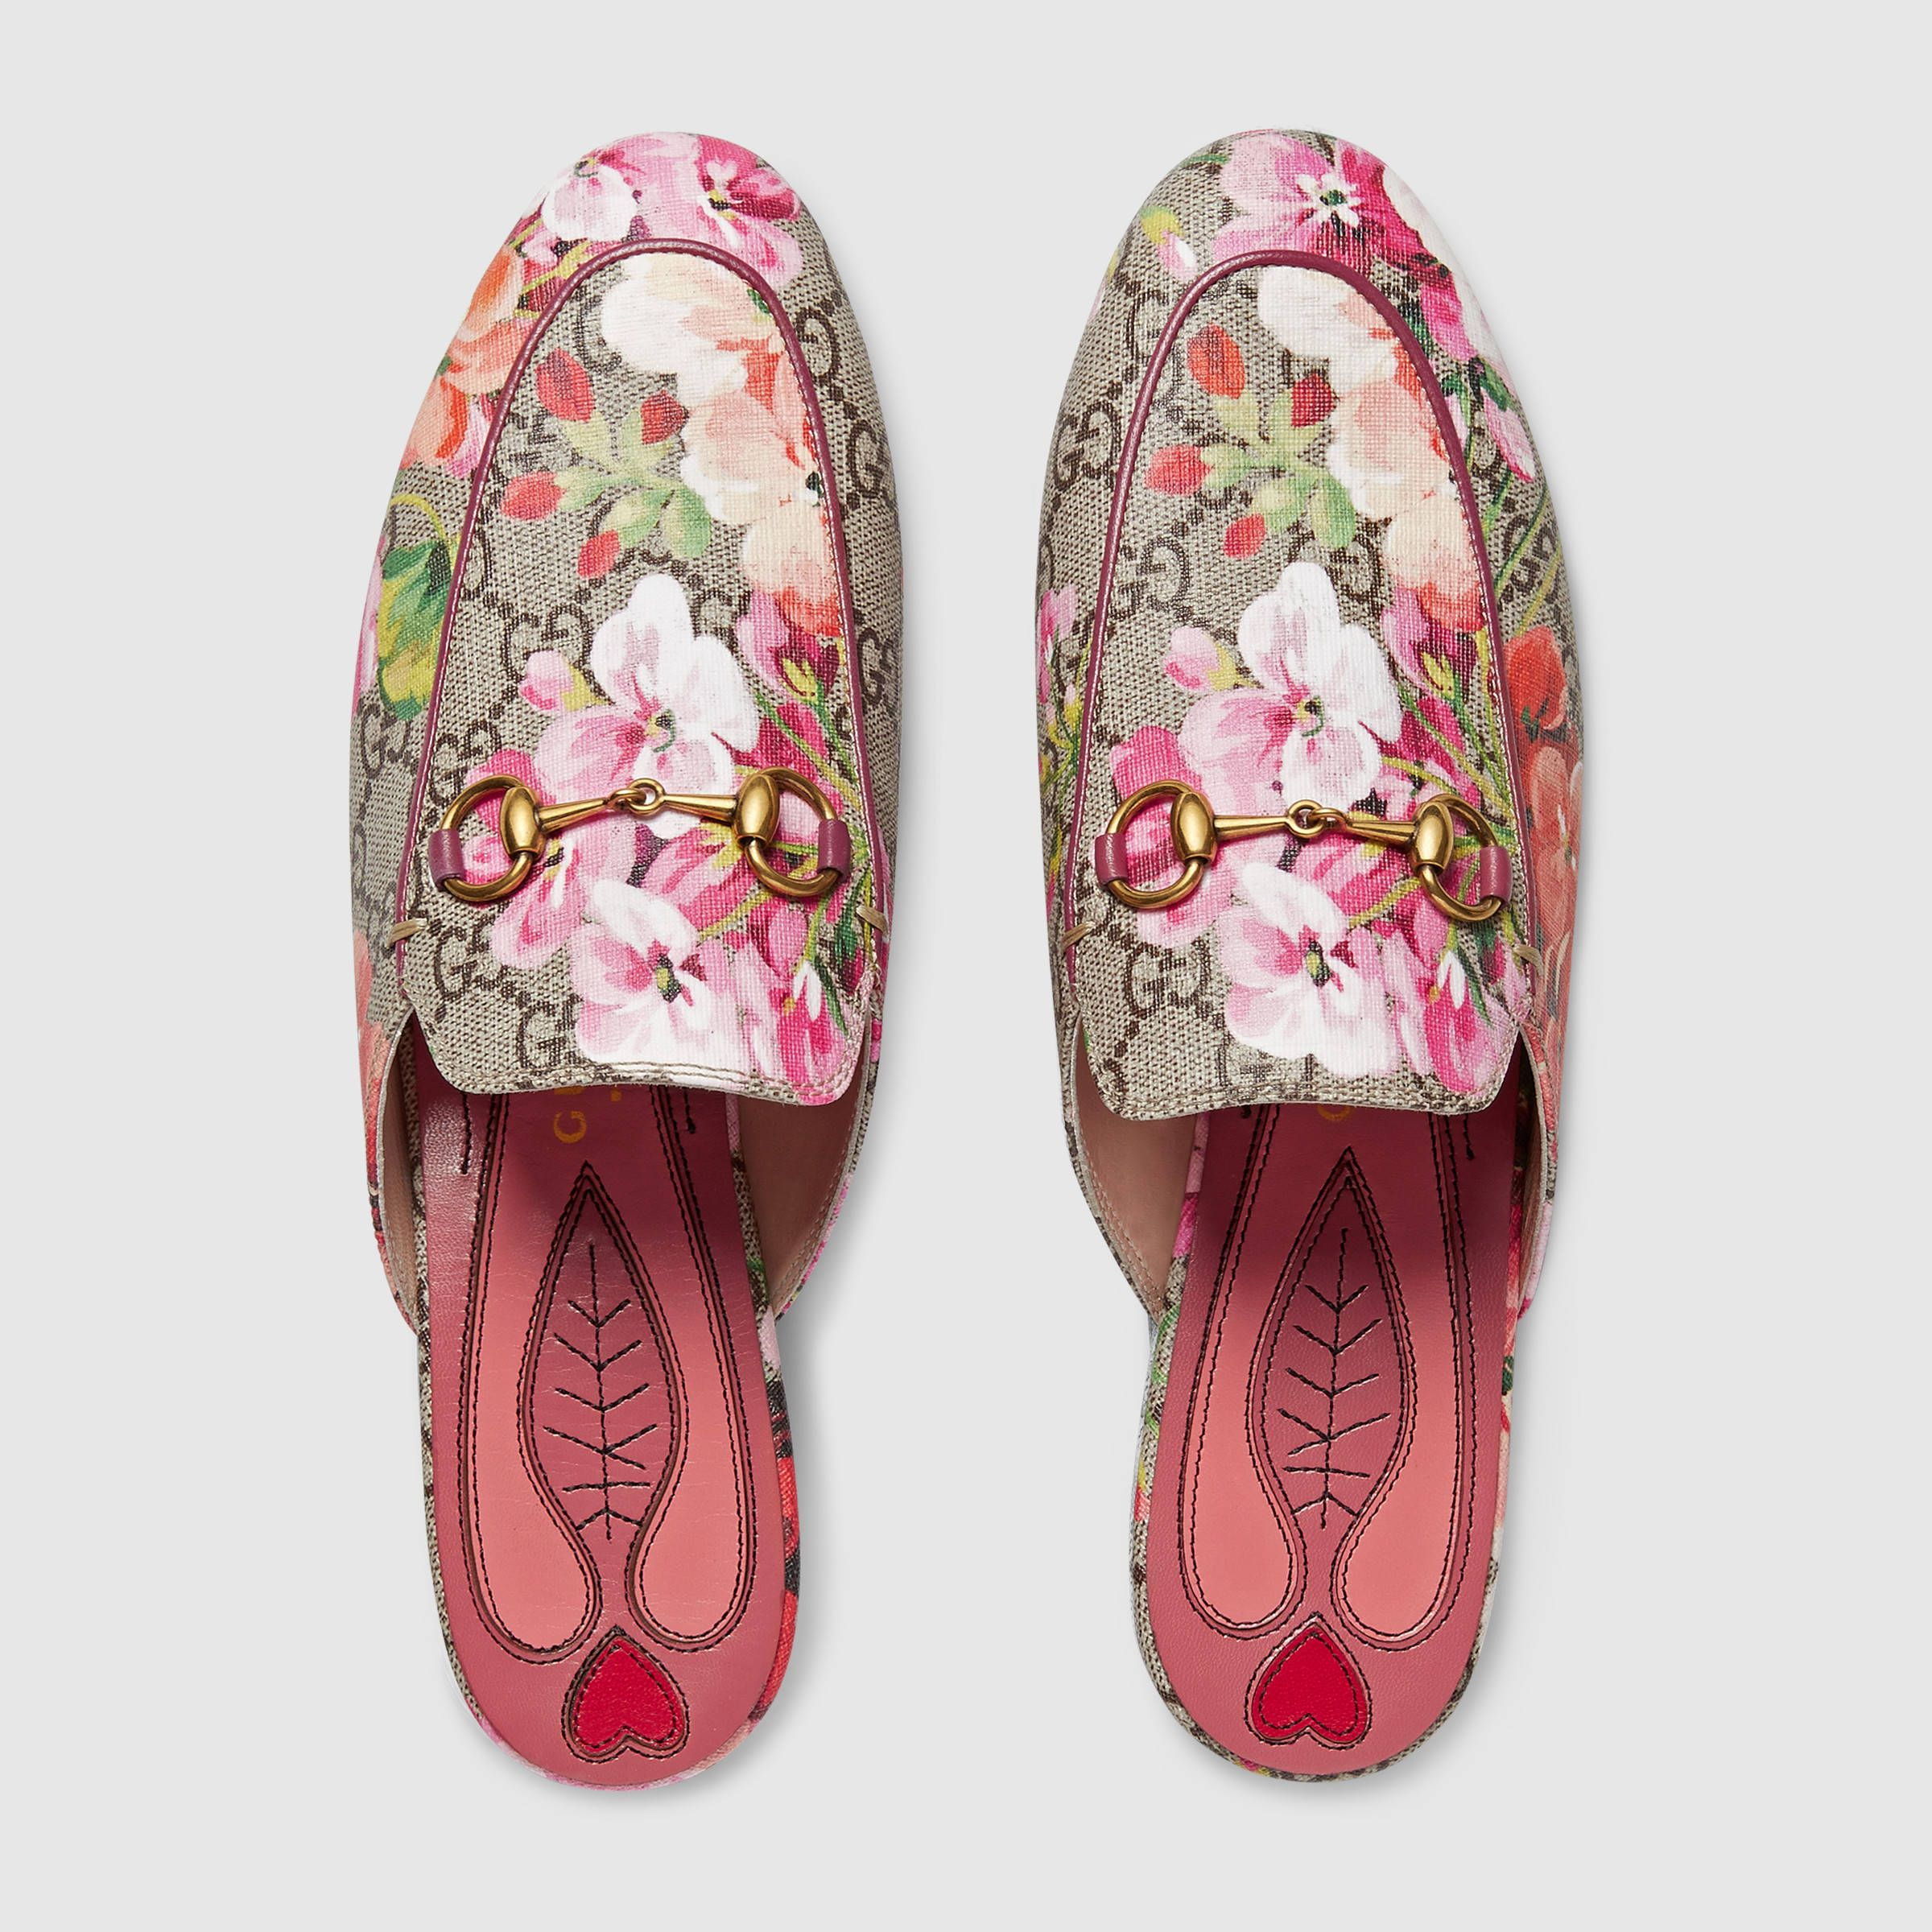 56606433d Gucci: Princetown GG Blooms slipper in Pink Blooms Print | PreFall ...